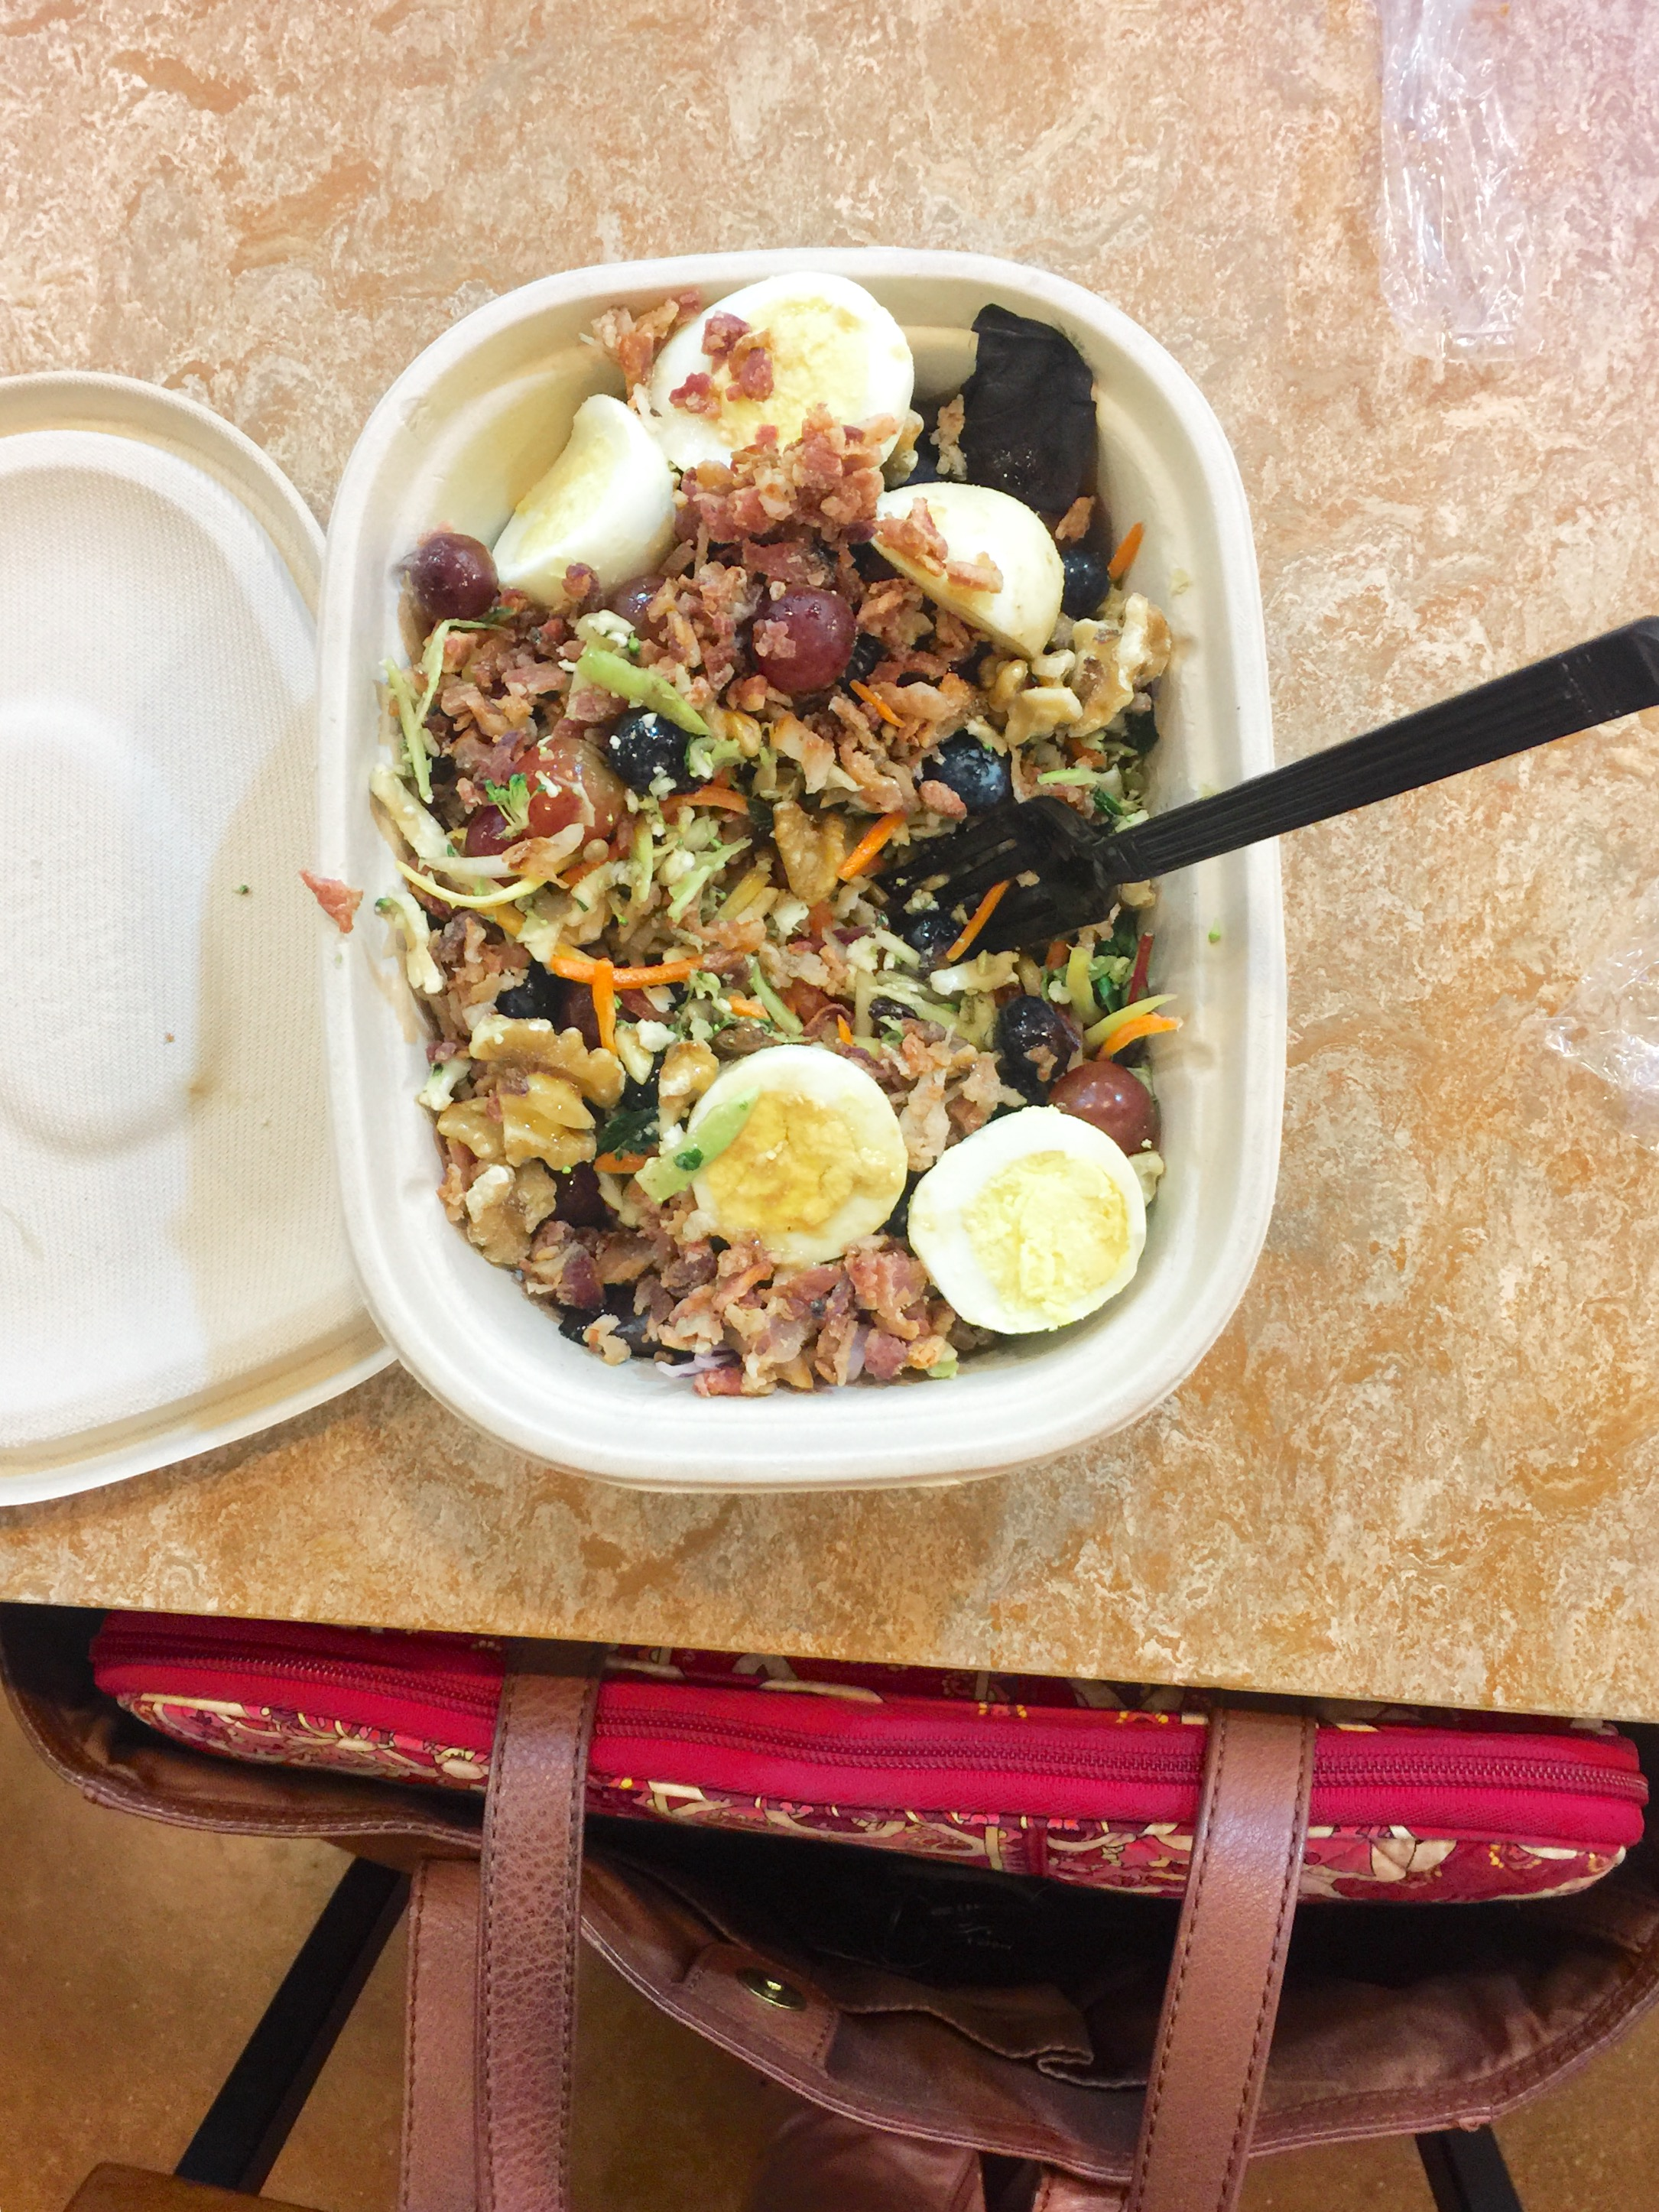 Whole Foods salad bar concoction (grapes, lettuce, blueberries, detox salad, shredded carrots, red onion, hard boiled eggs, and bacon with vinegar and olive oil